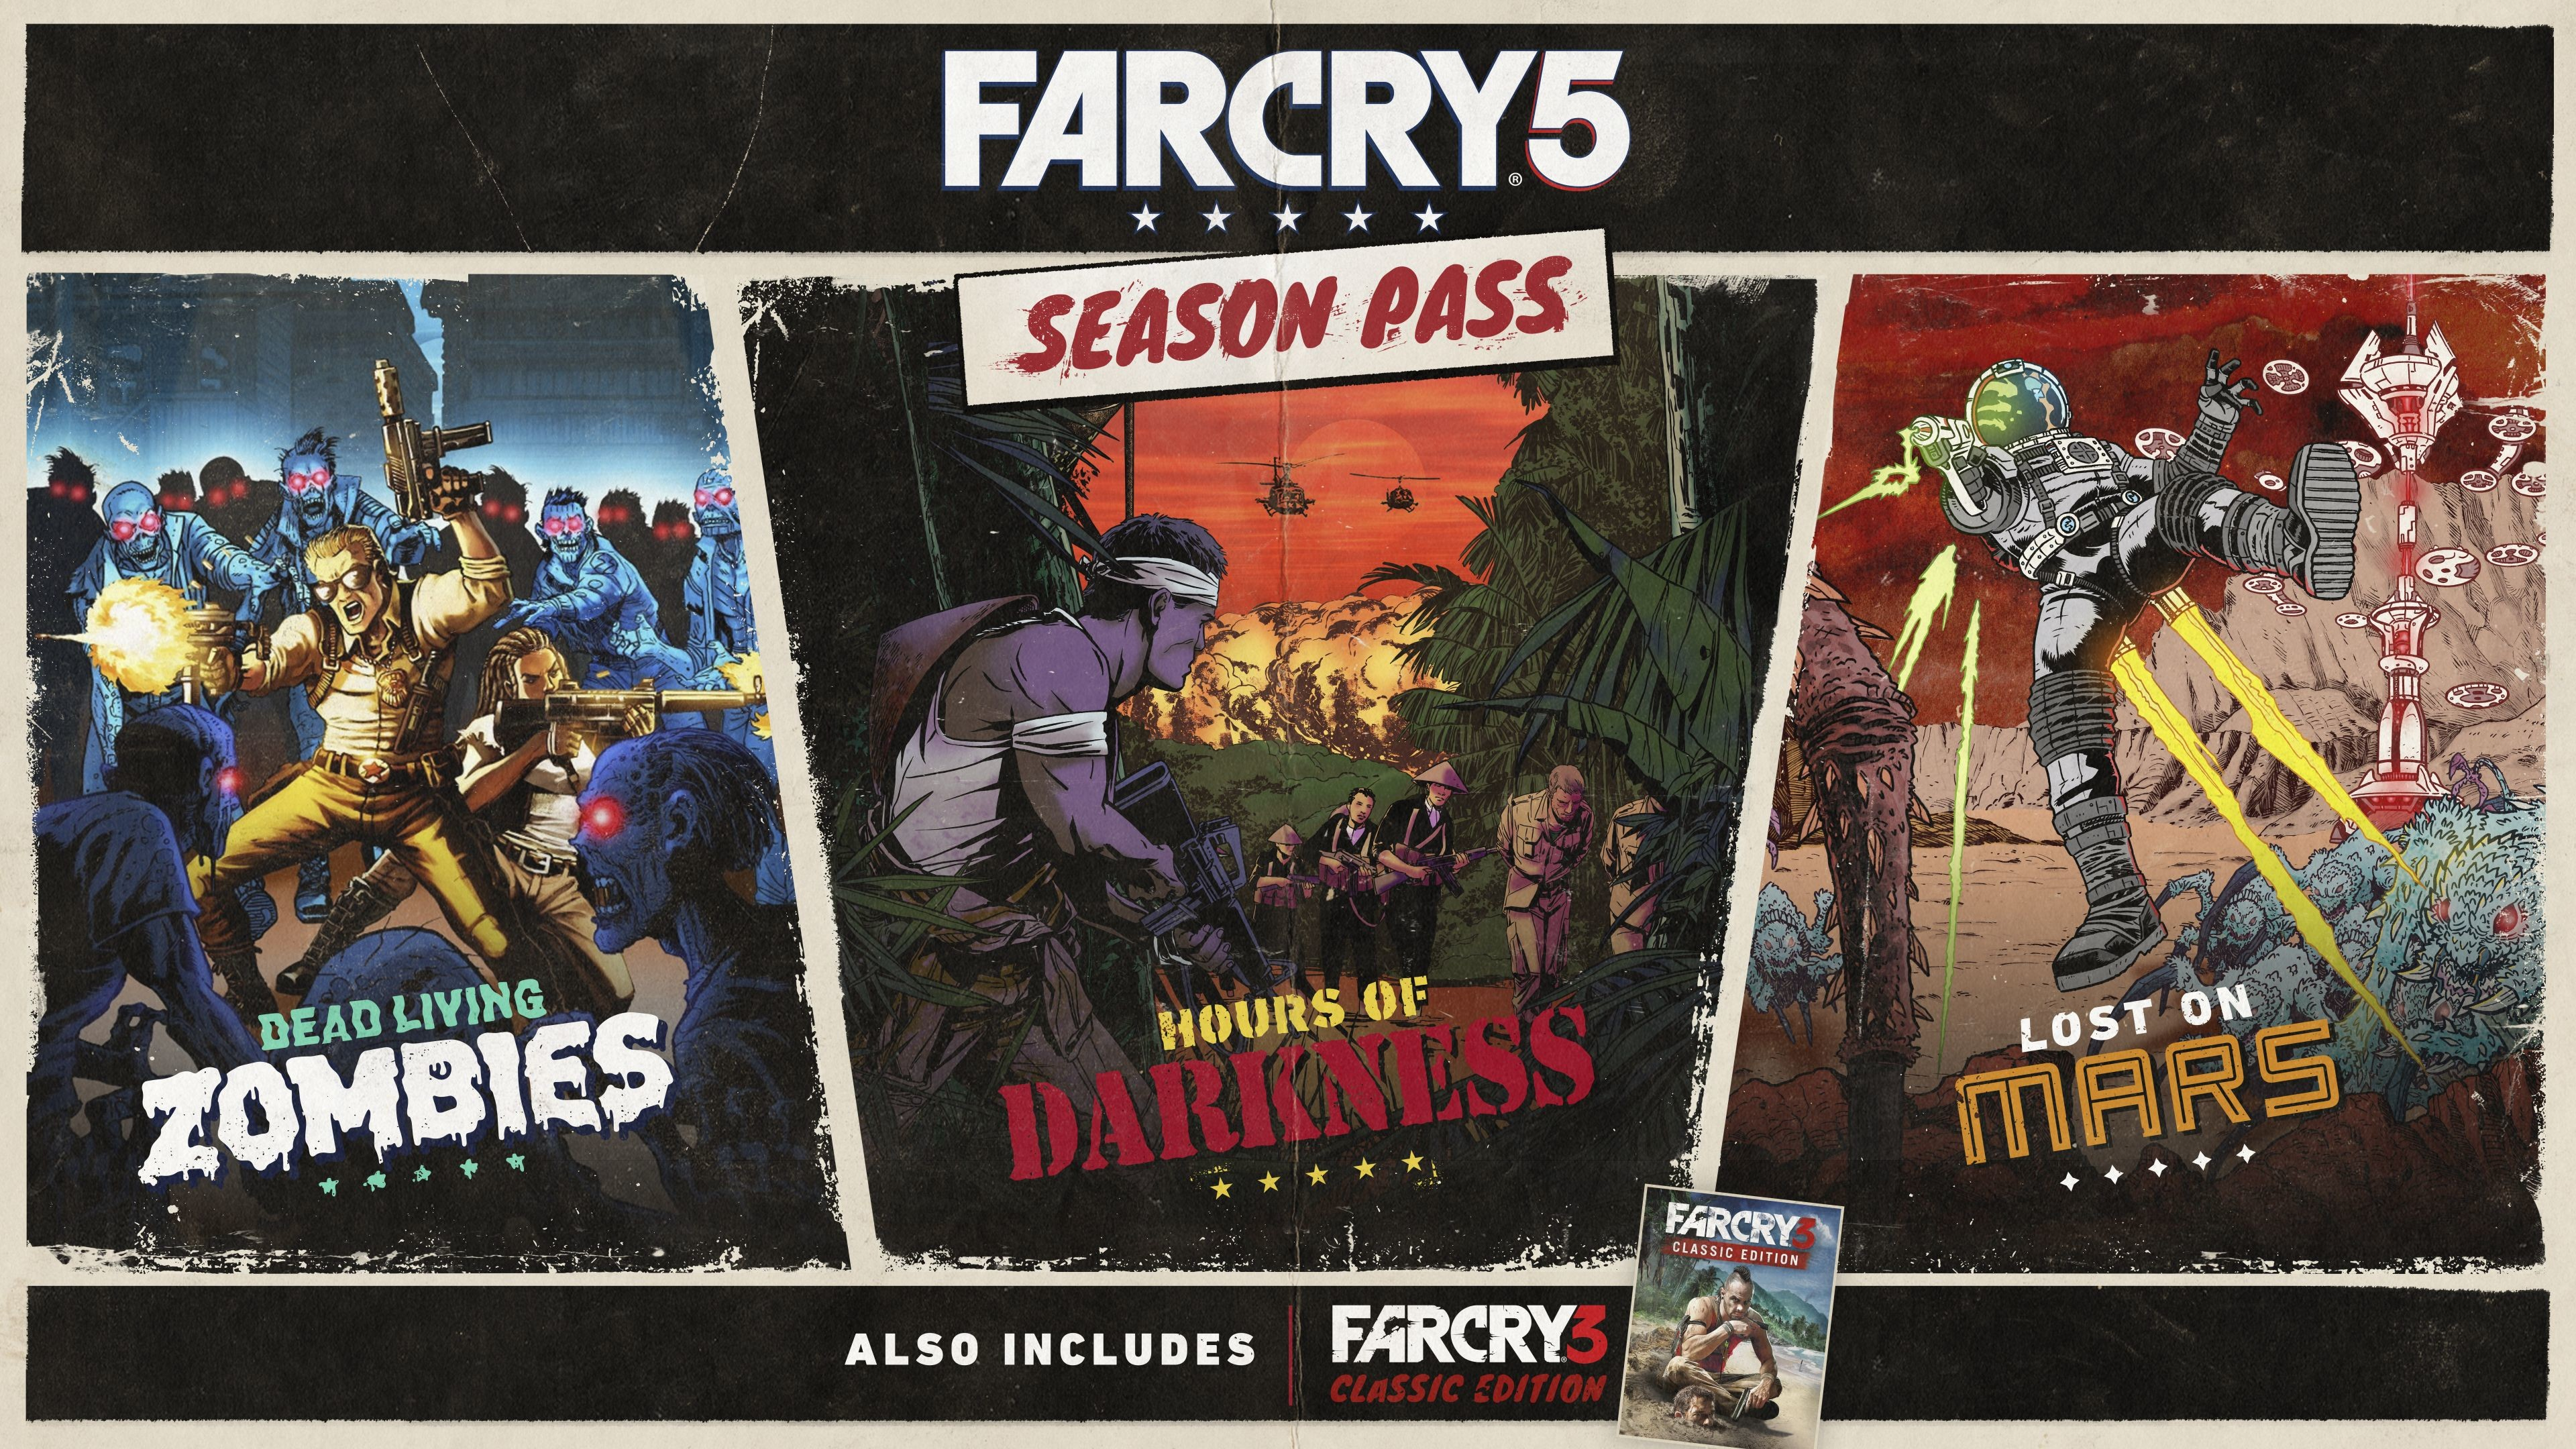 Far Cry 5 season pass contents detailed by Ubisoft